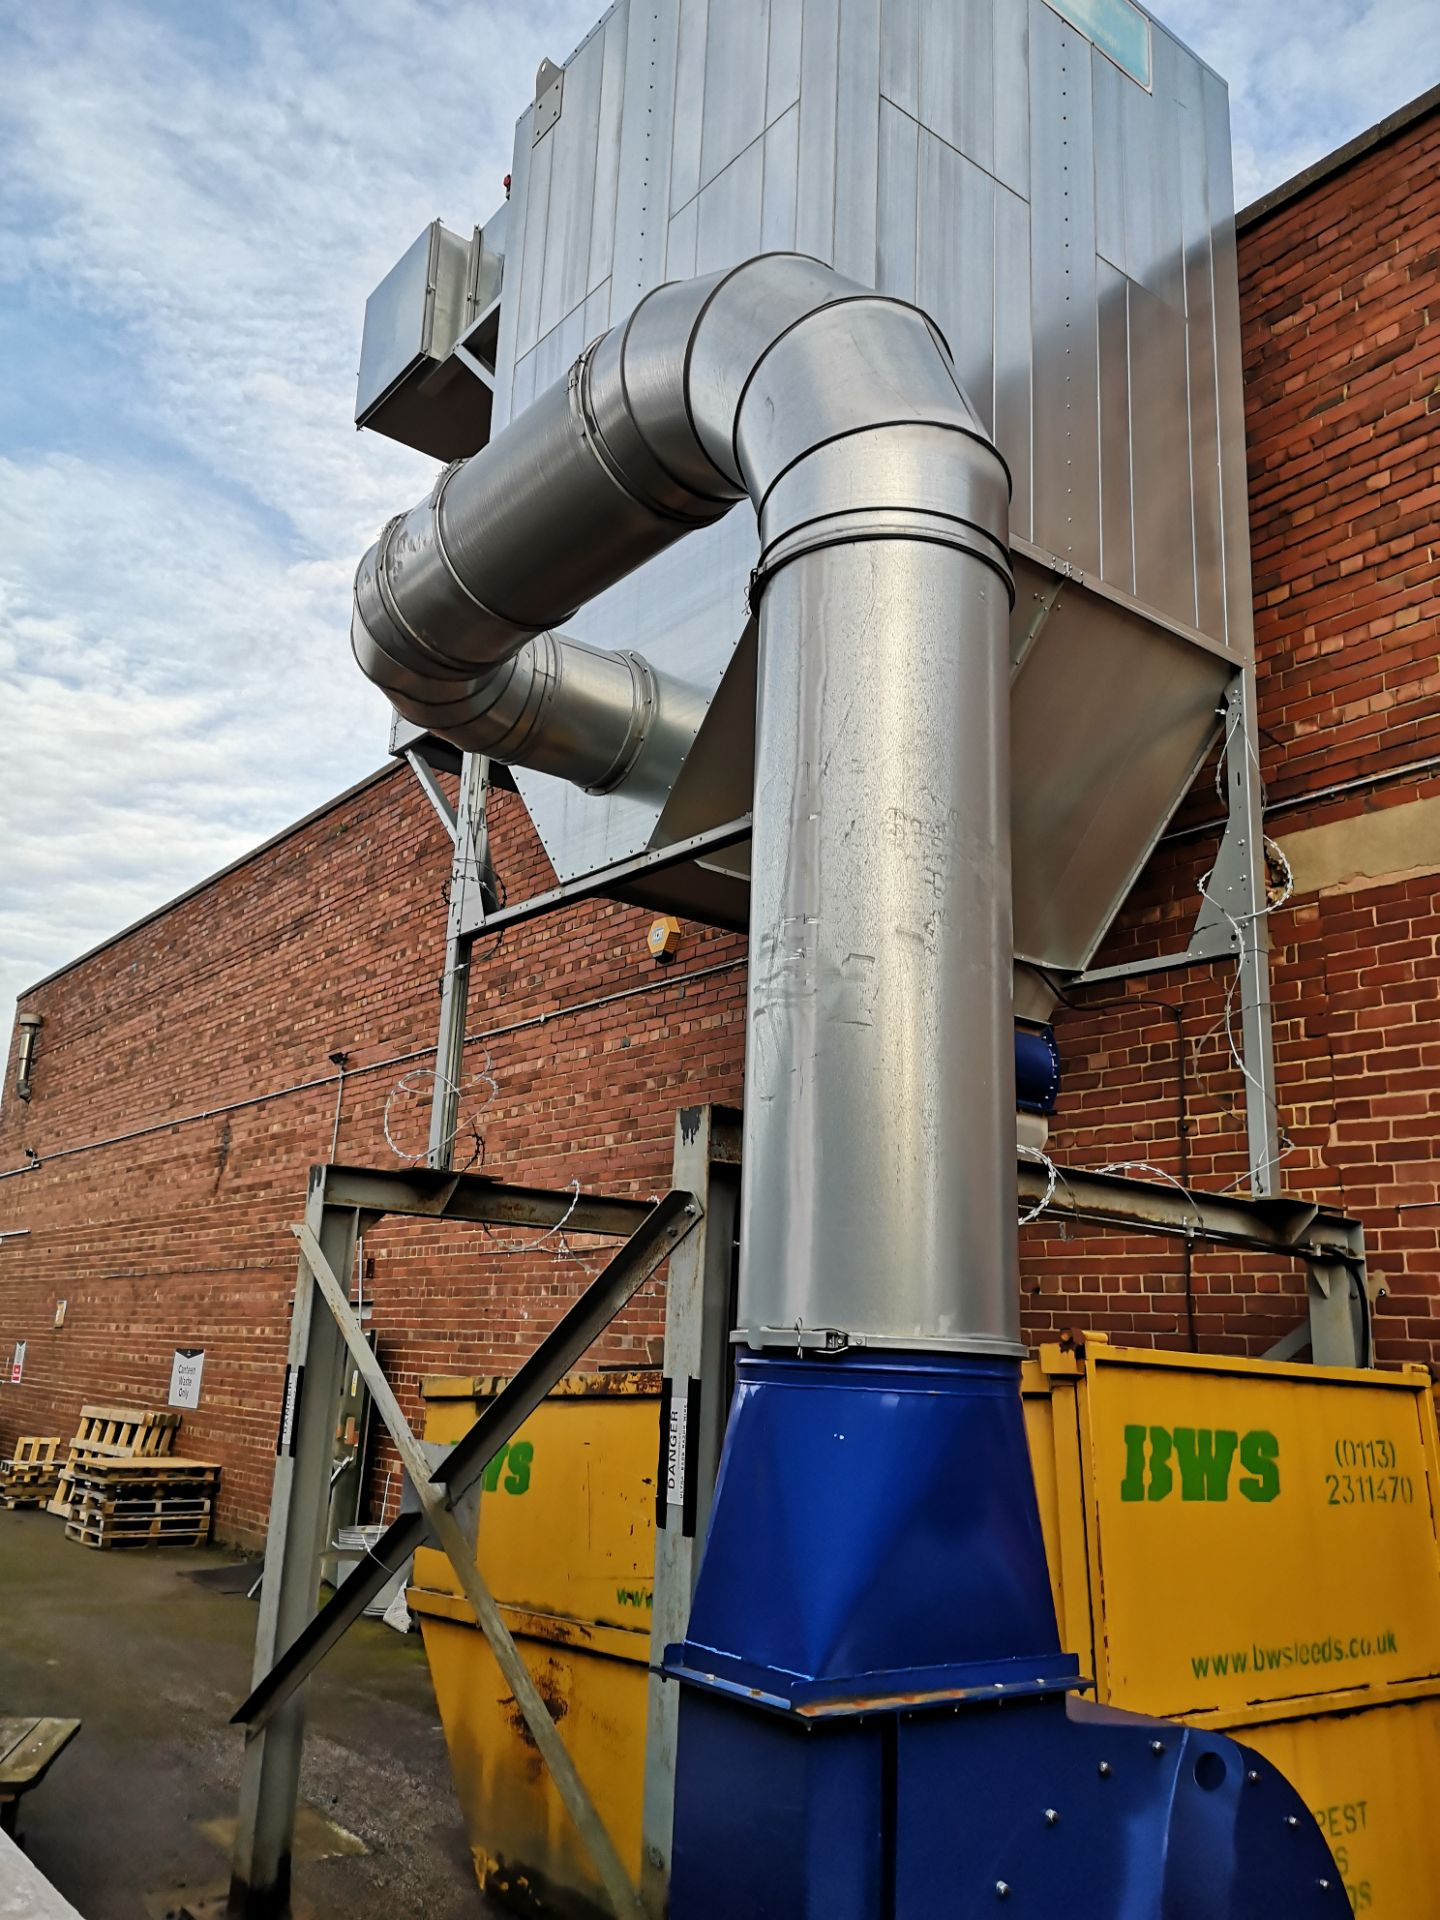 Lot 444 - DCS Atex Galvanised Steel Dust Extraction System c